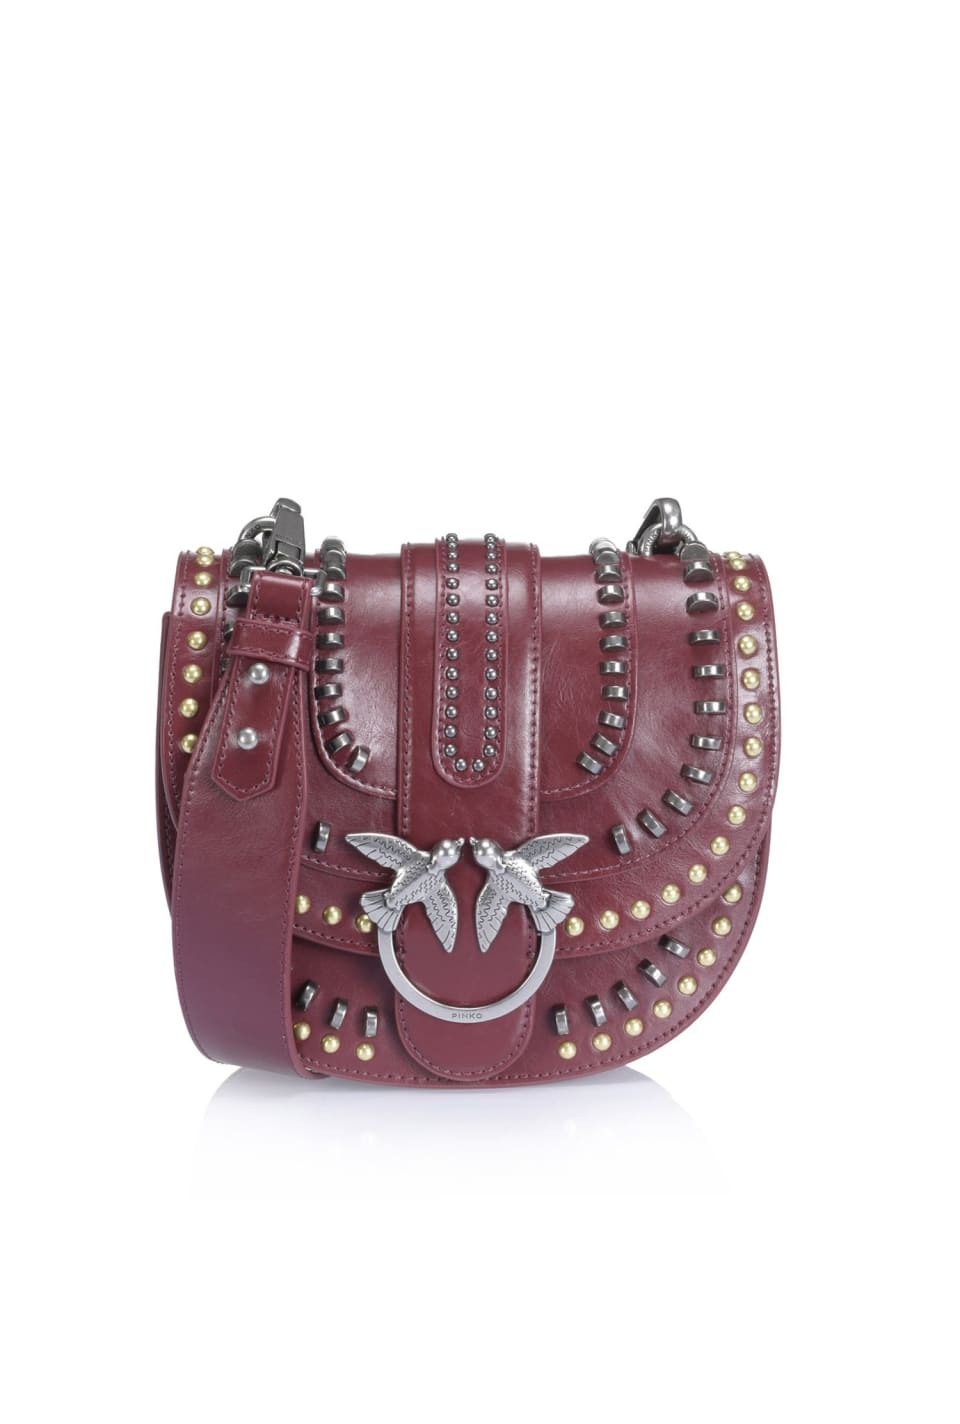 Mix Studs Round Love Bag in leather